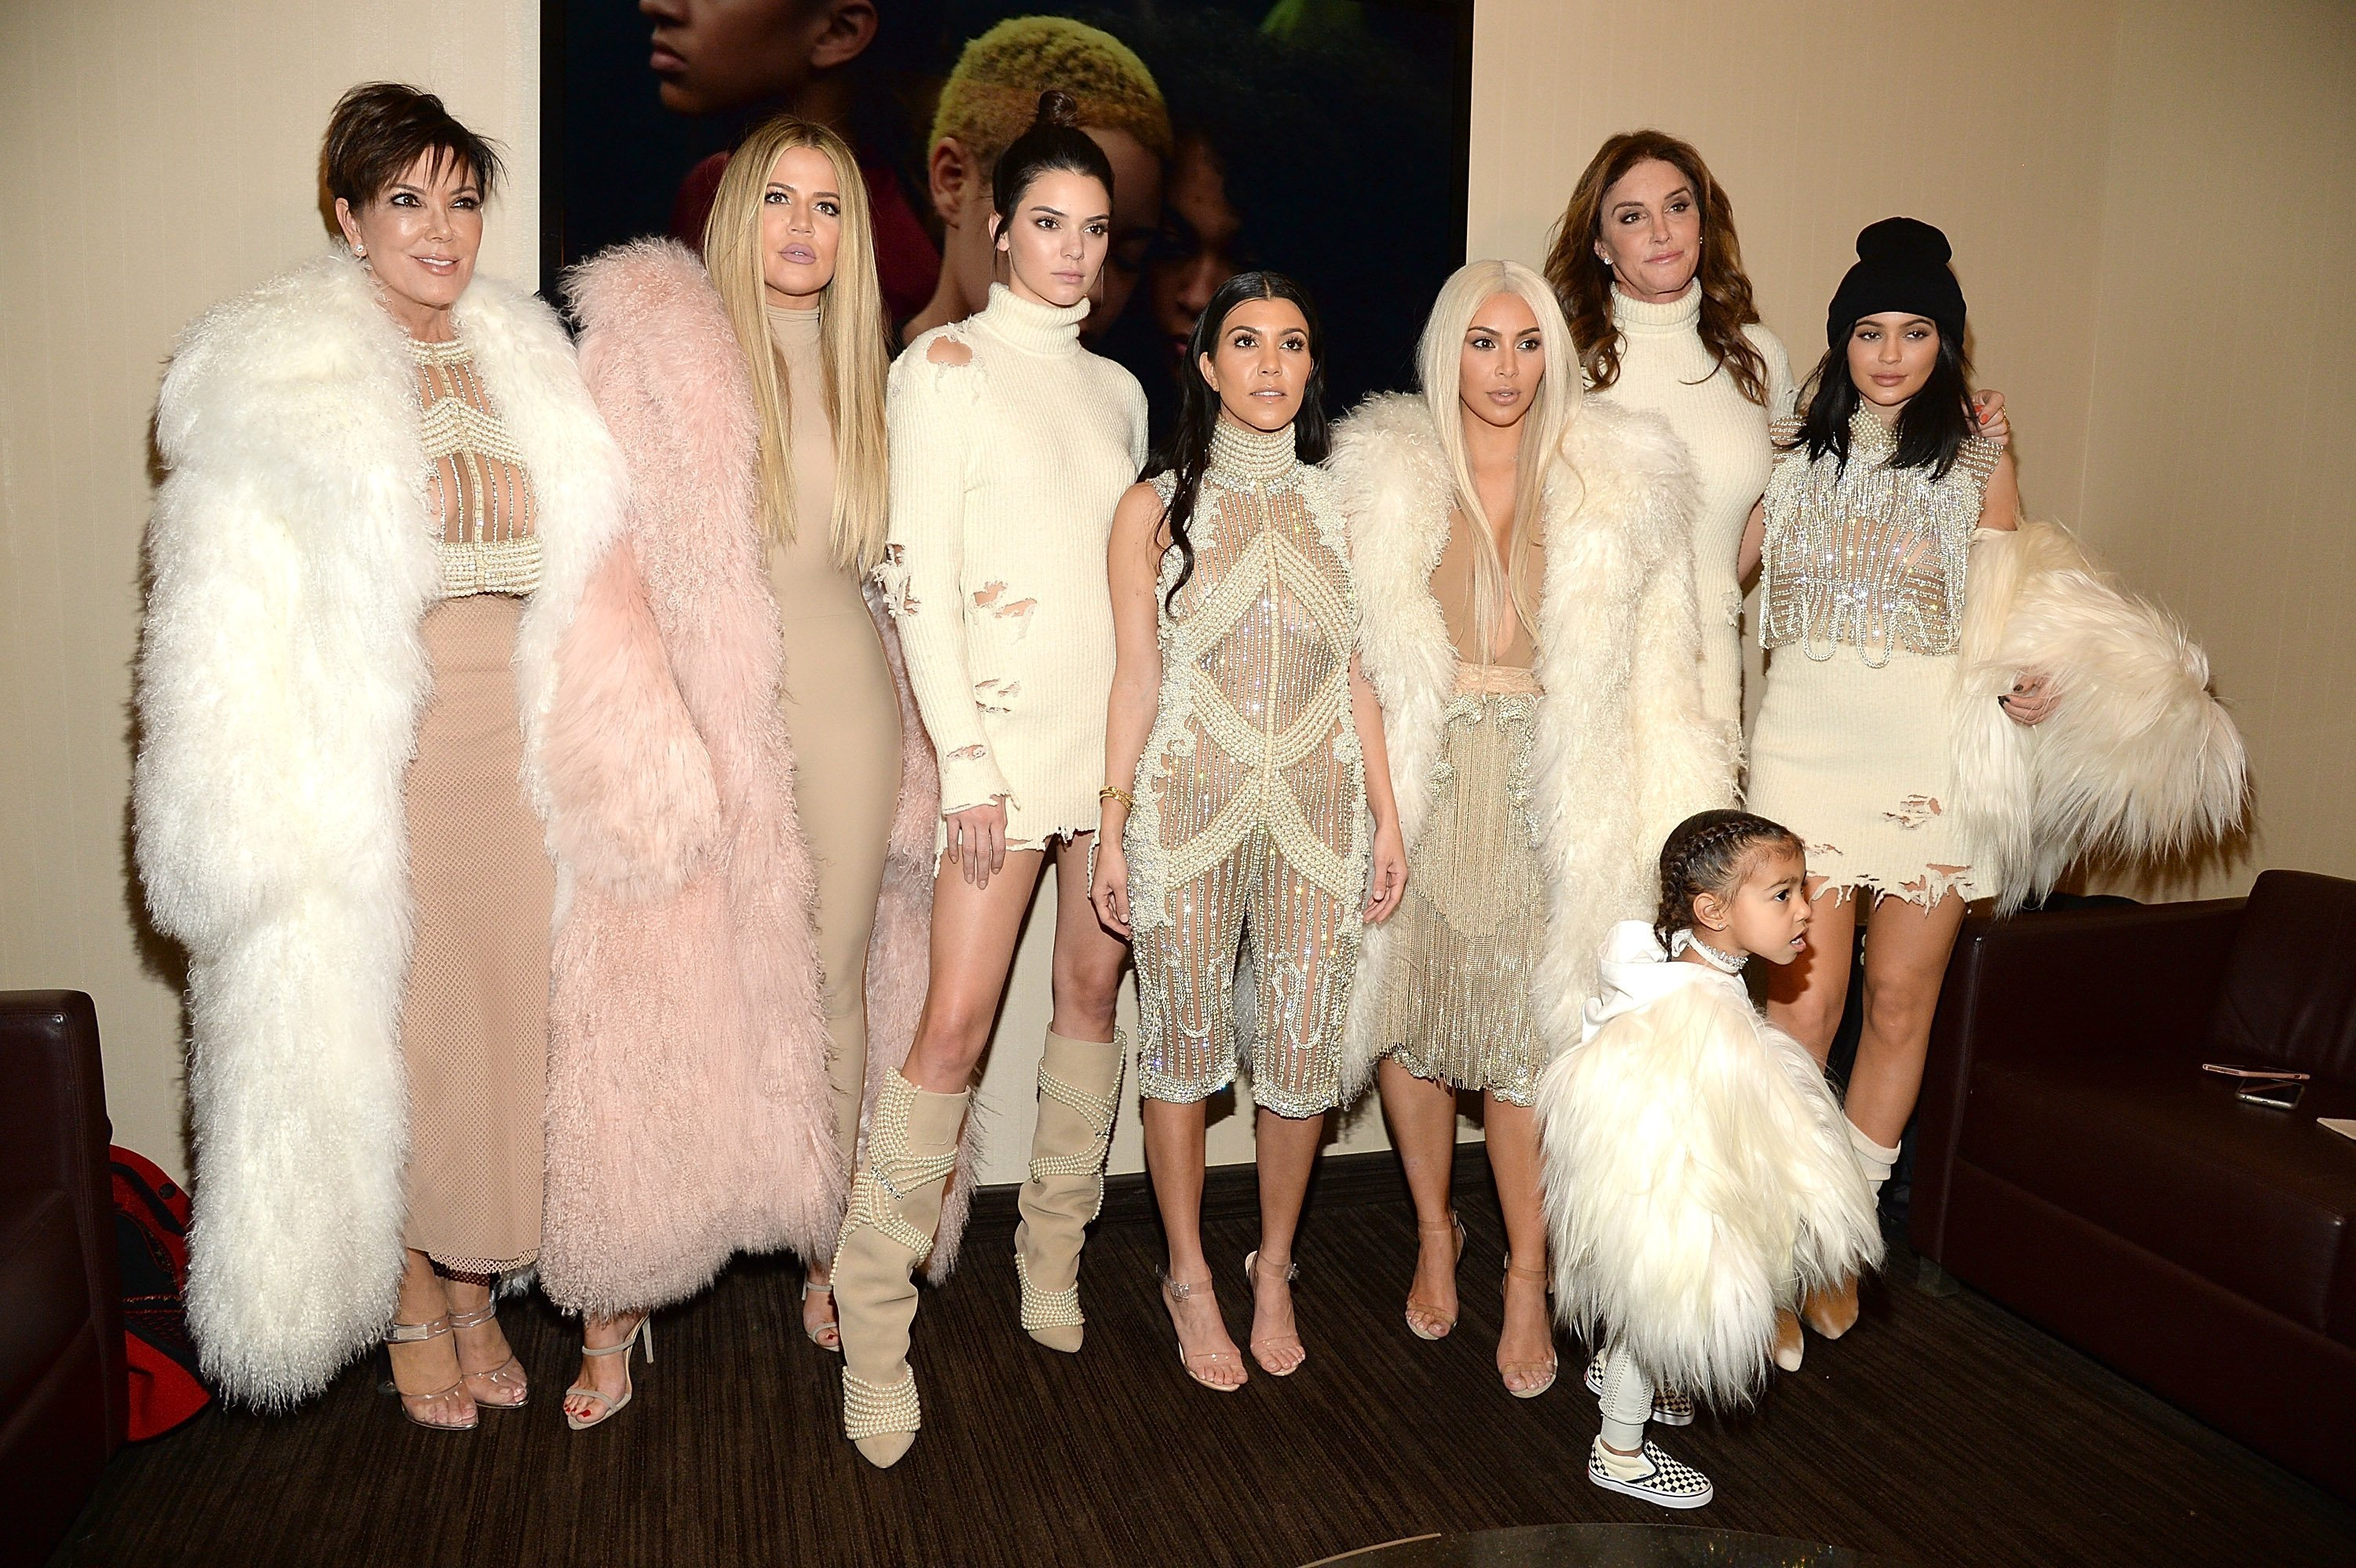 Kris Jennner, Khloe Kardashian, Kendall Jenner, Kourtney Kardashian, Kim Kardashian and daughter North West, Caitlyn Jenner and Kylie Jenner at Kanye West Yeezy Season 3 on February 11, 2016 l Source: Getty Images